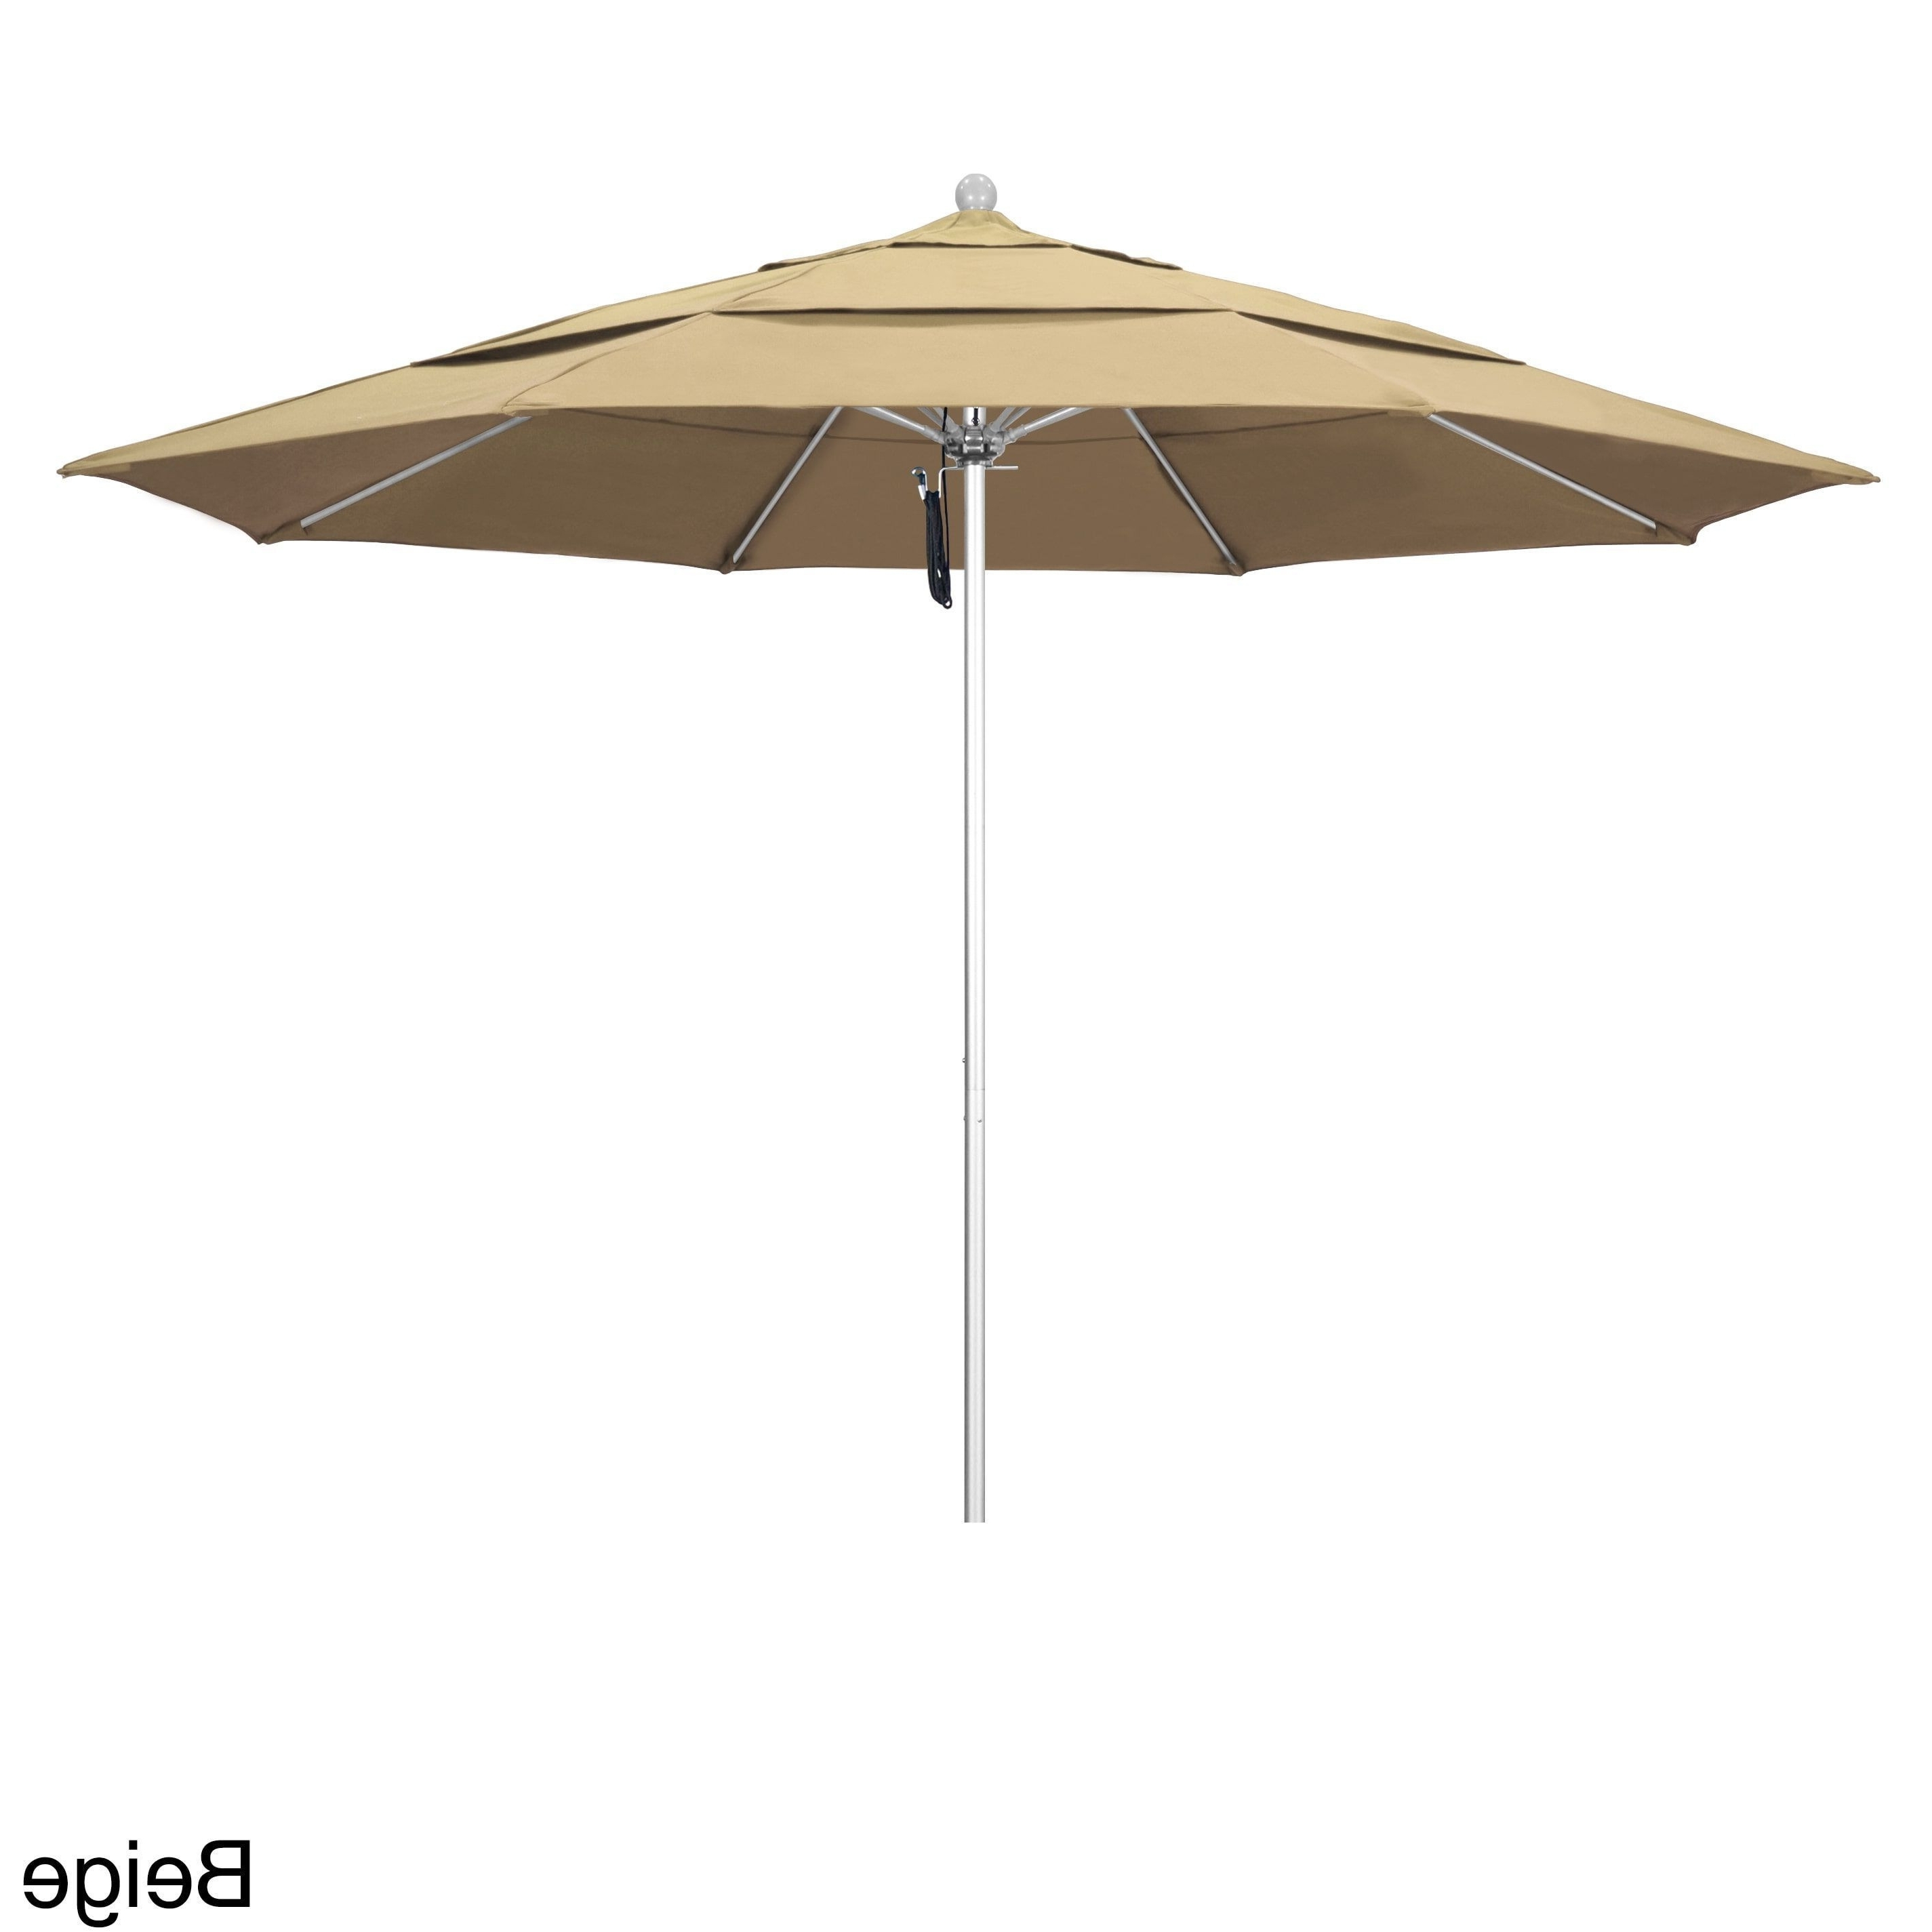 Most Popular Patio Umbrellas For High Wind Areas Intended For Commercial Outdoor Umbrellas Elegant Best For High Wind Areas This (View 9 of 20)